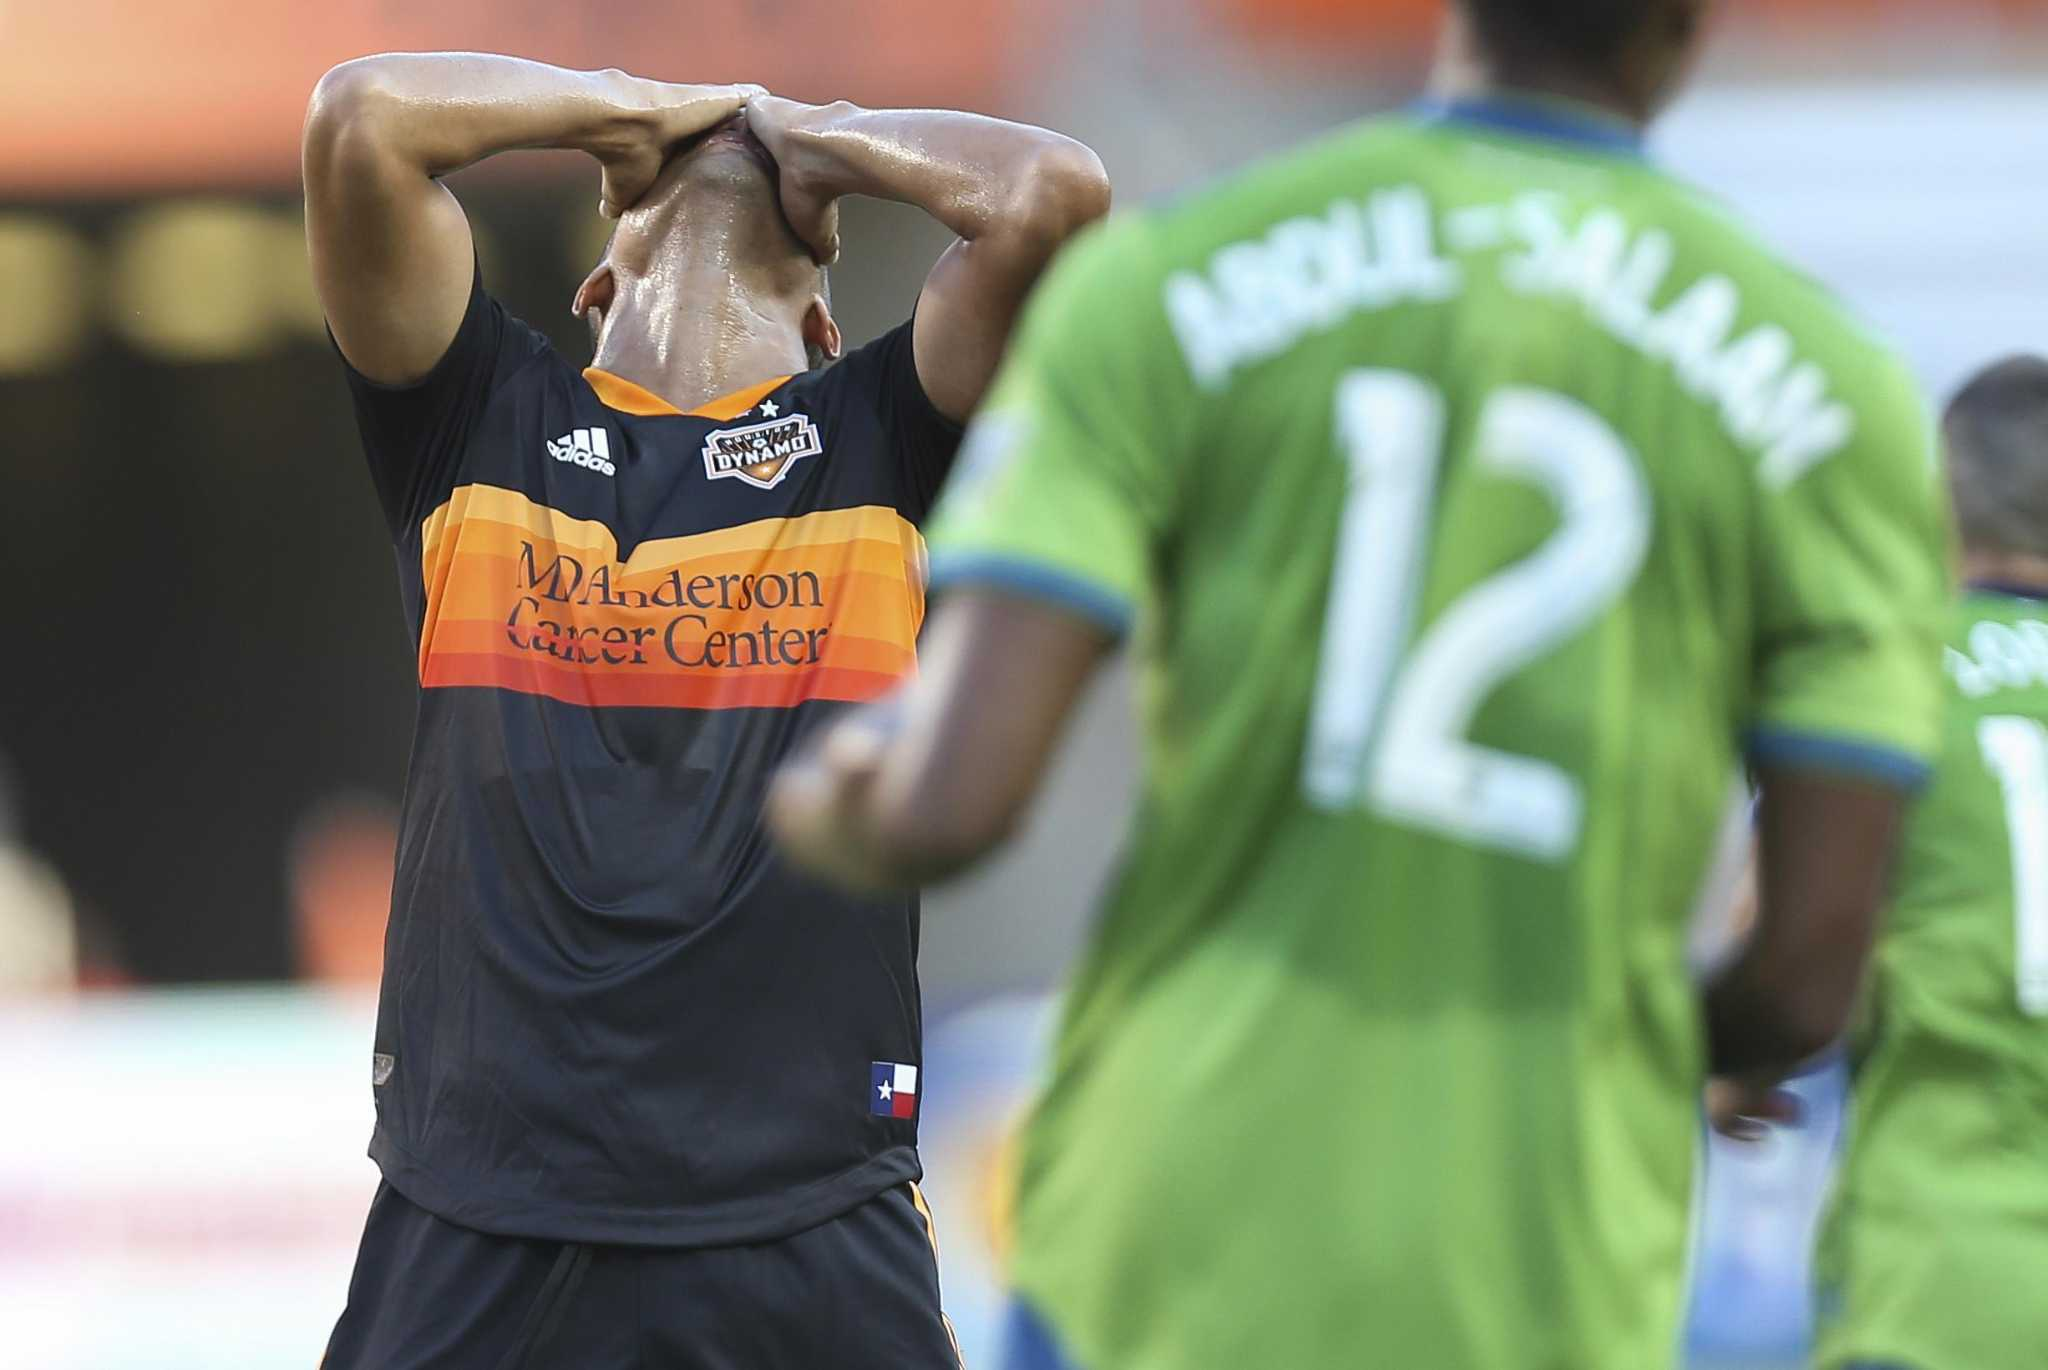 Dynamo's struggles on offense mark recent slump